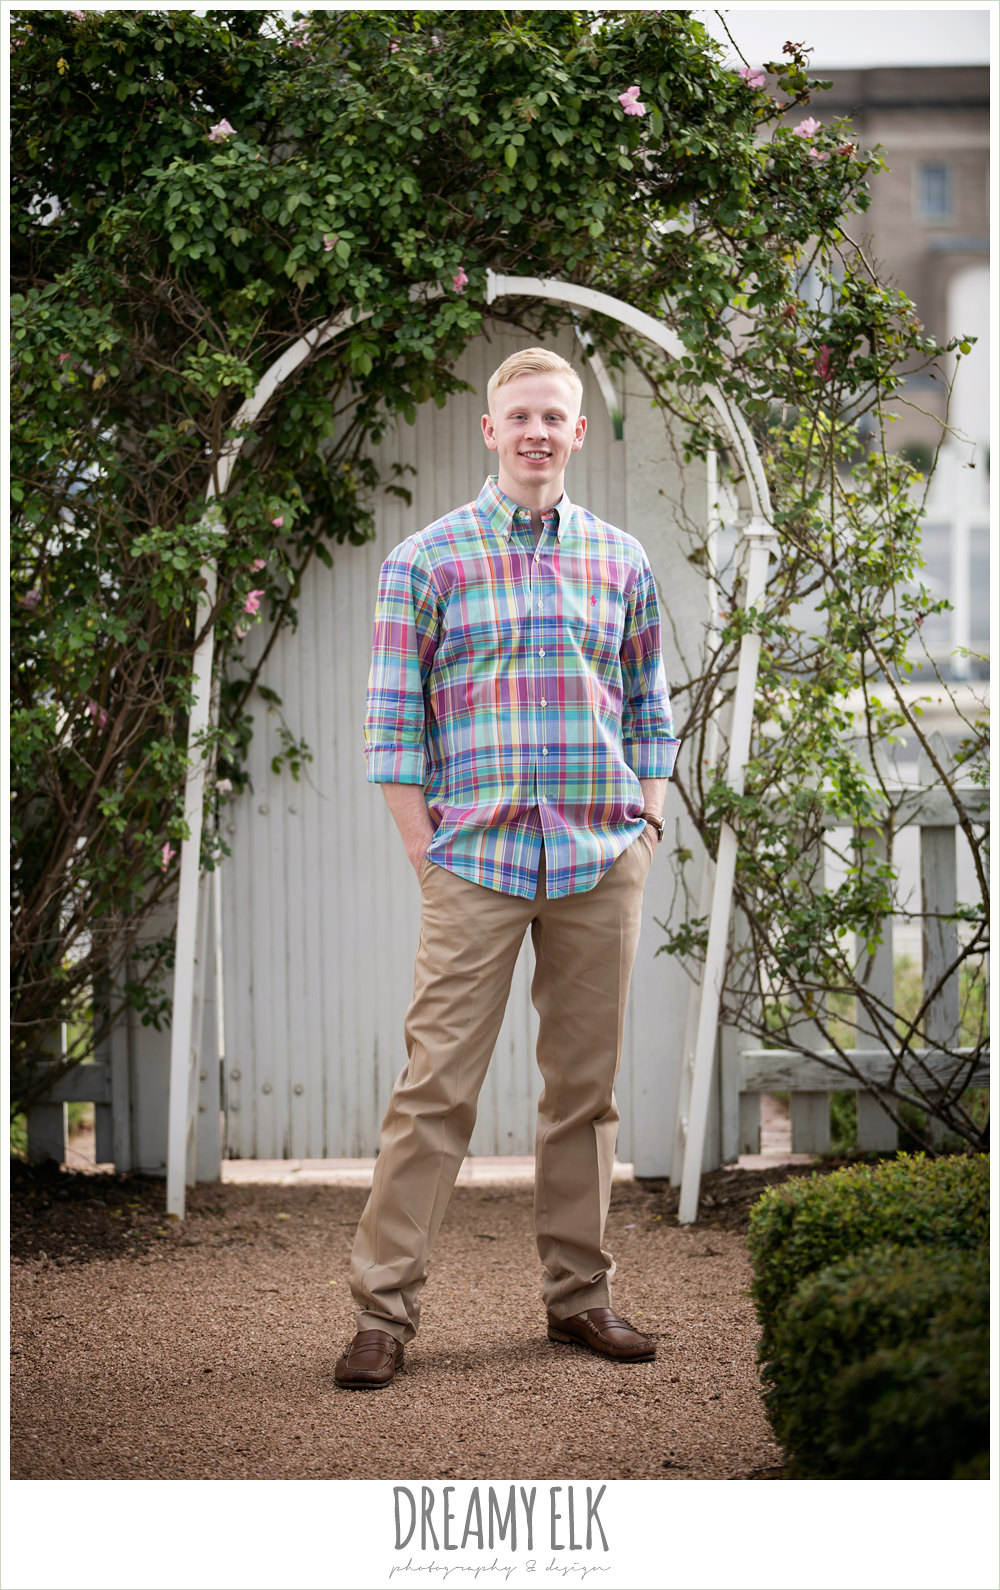 outdoor spring high school senior boy photo, georgetown, texas {dreamy elk photography and design}